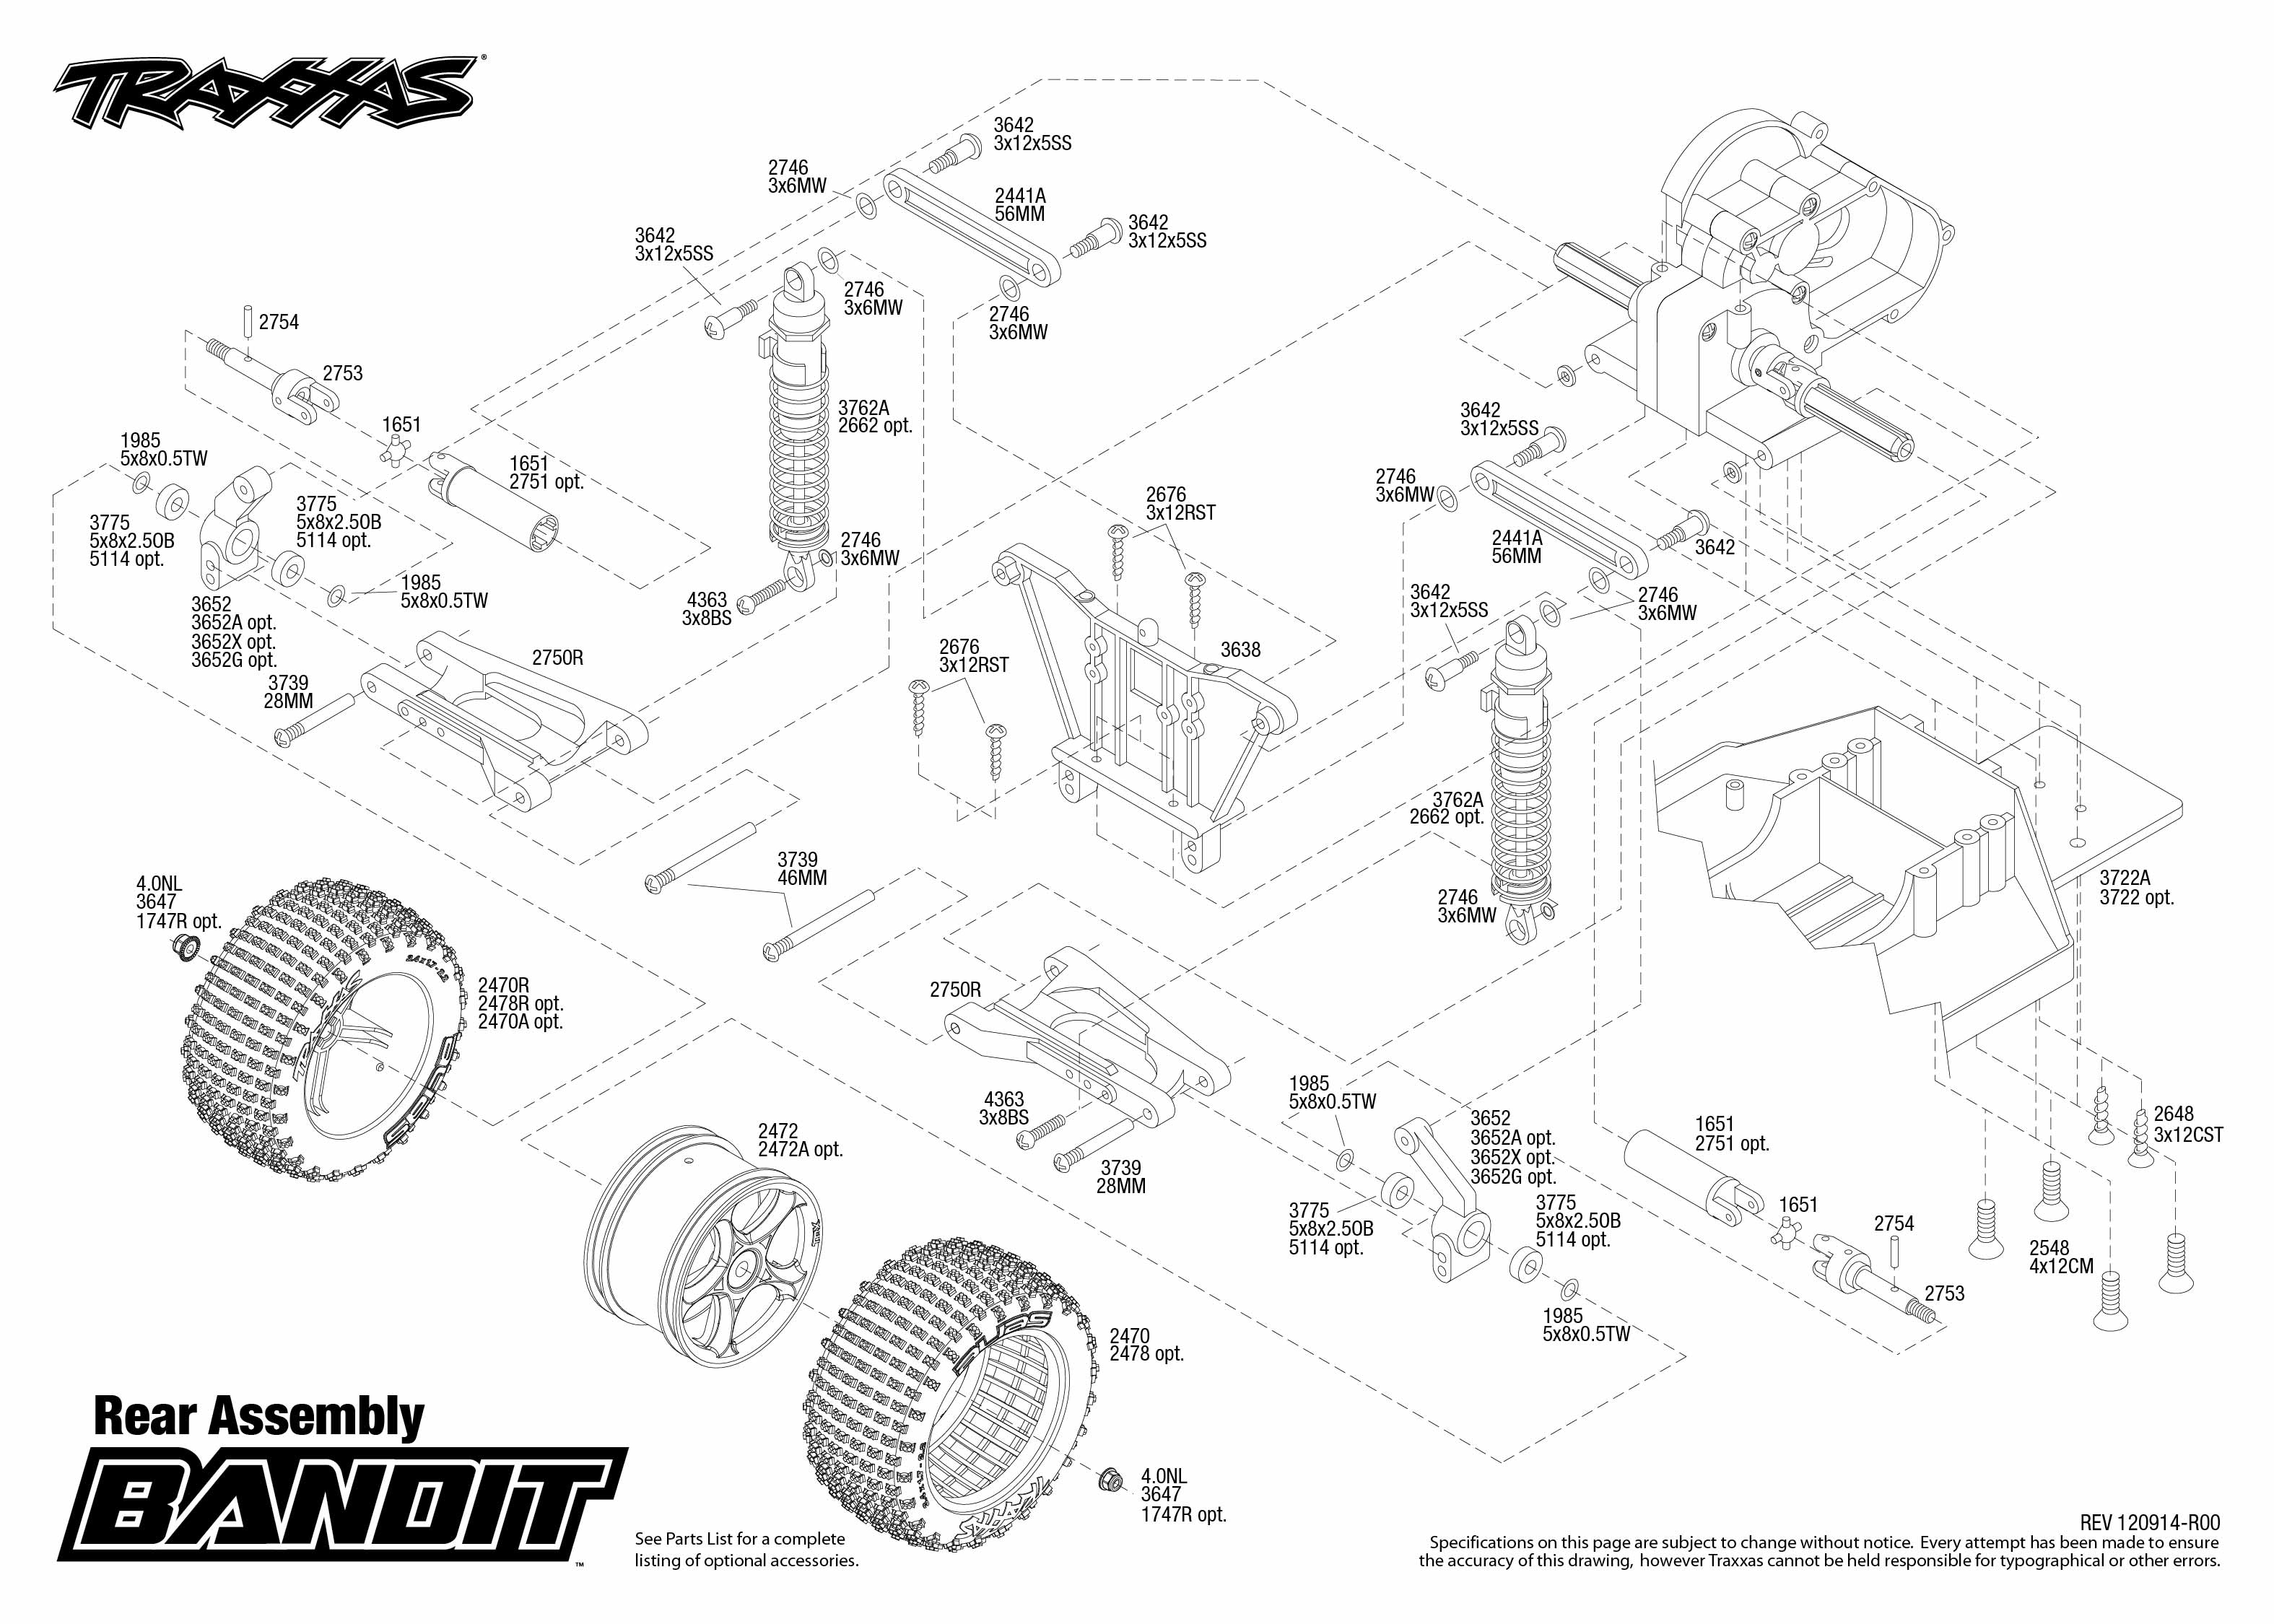 Astonishing 2405 Rear Exploded View Bandit Traxxas Wiring Database Ittabxeroyuccorg